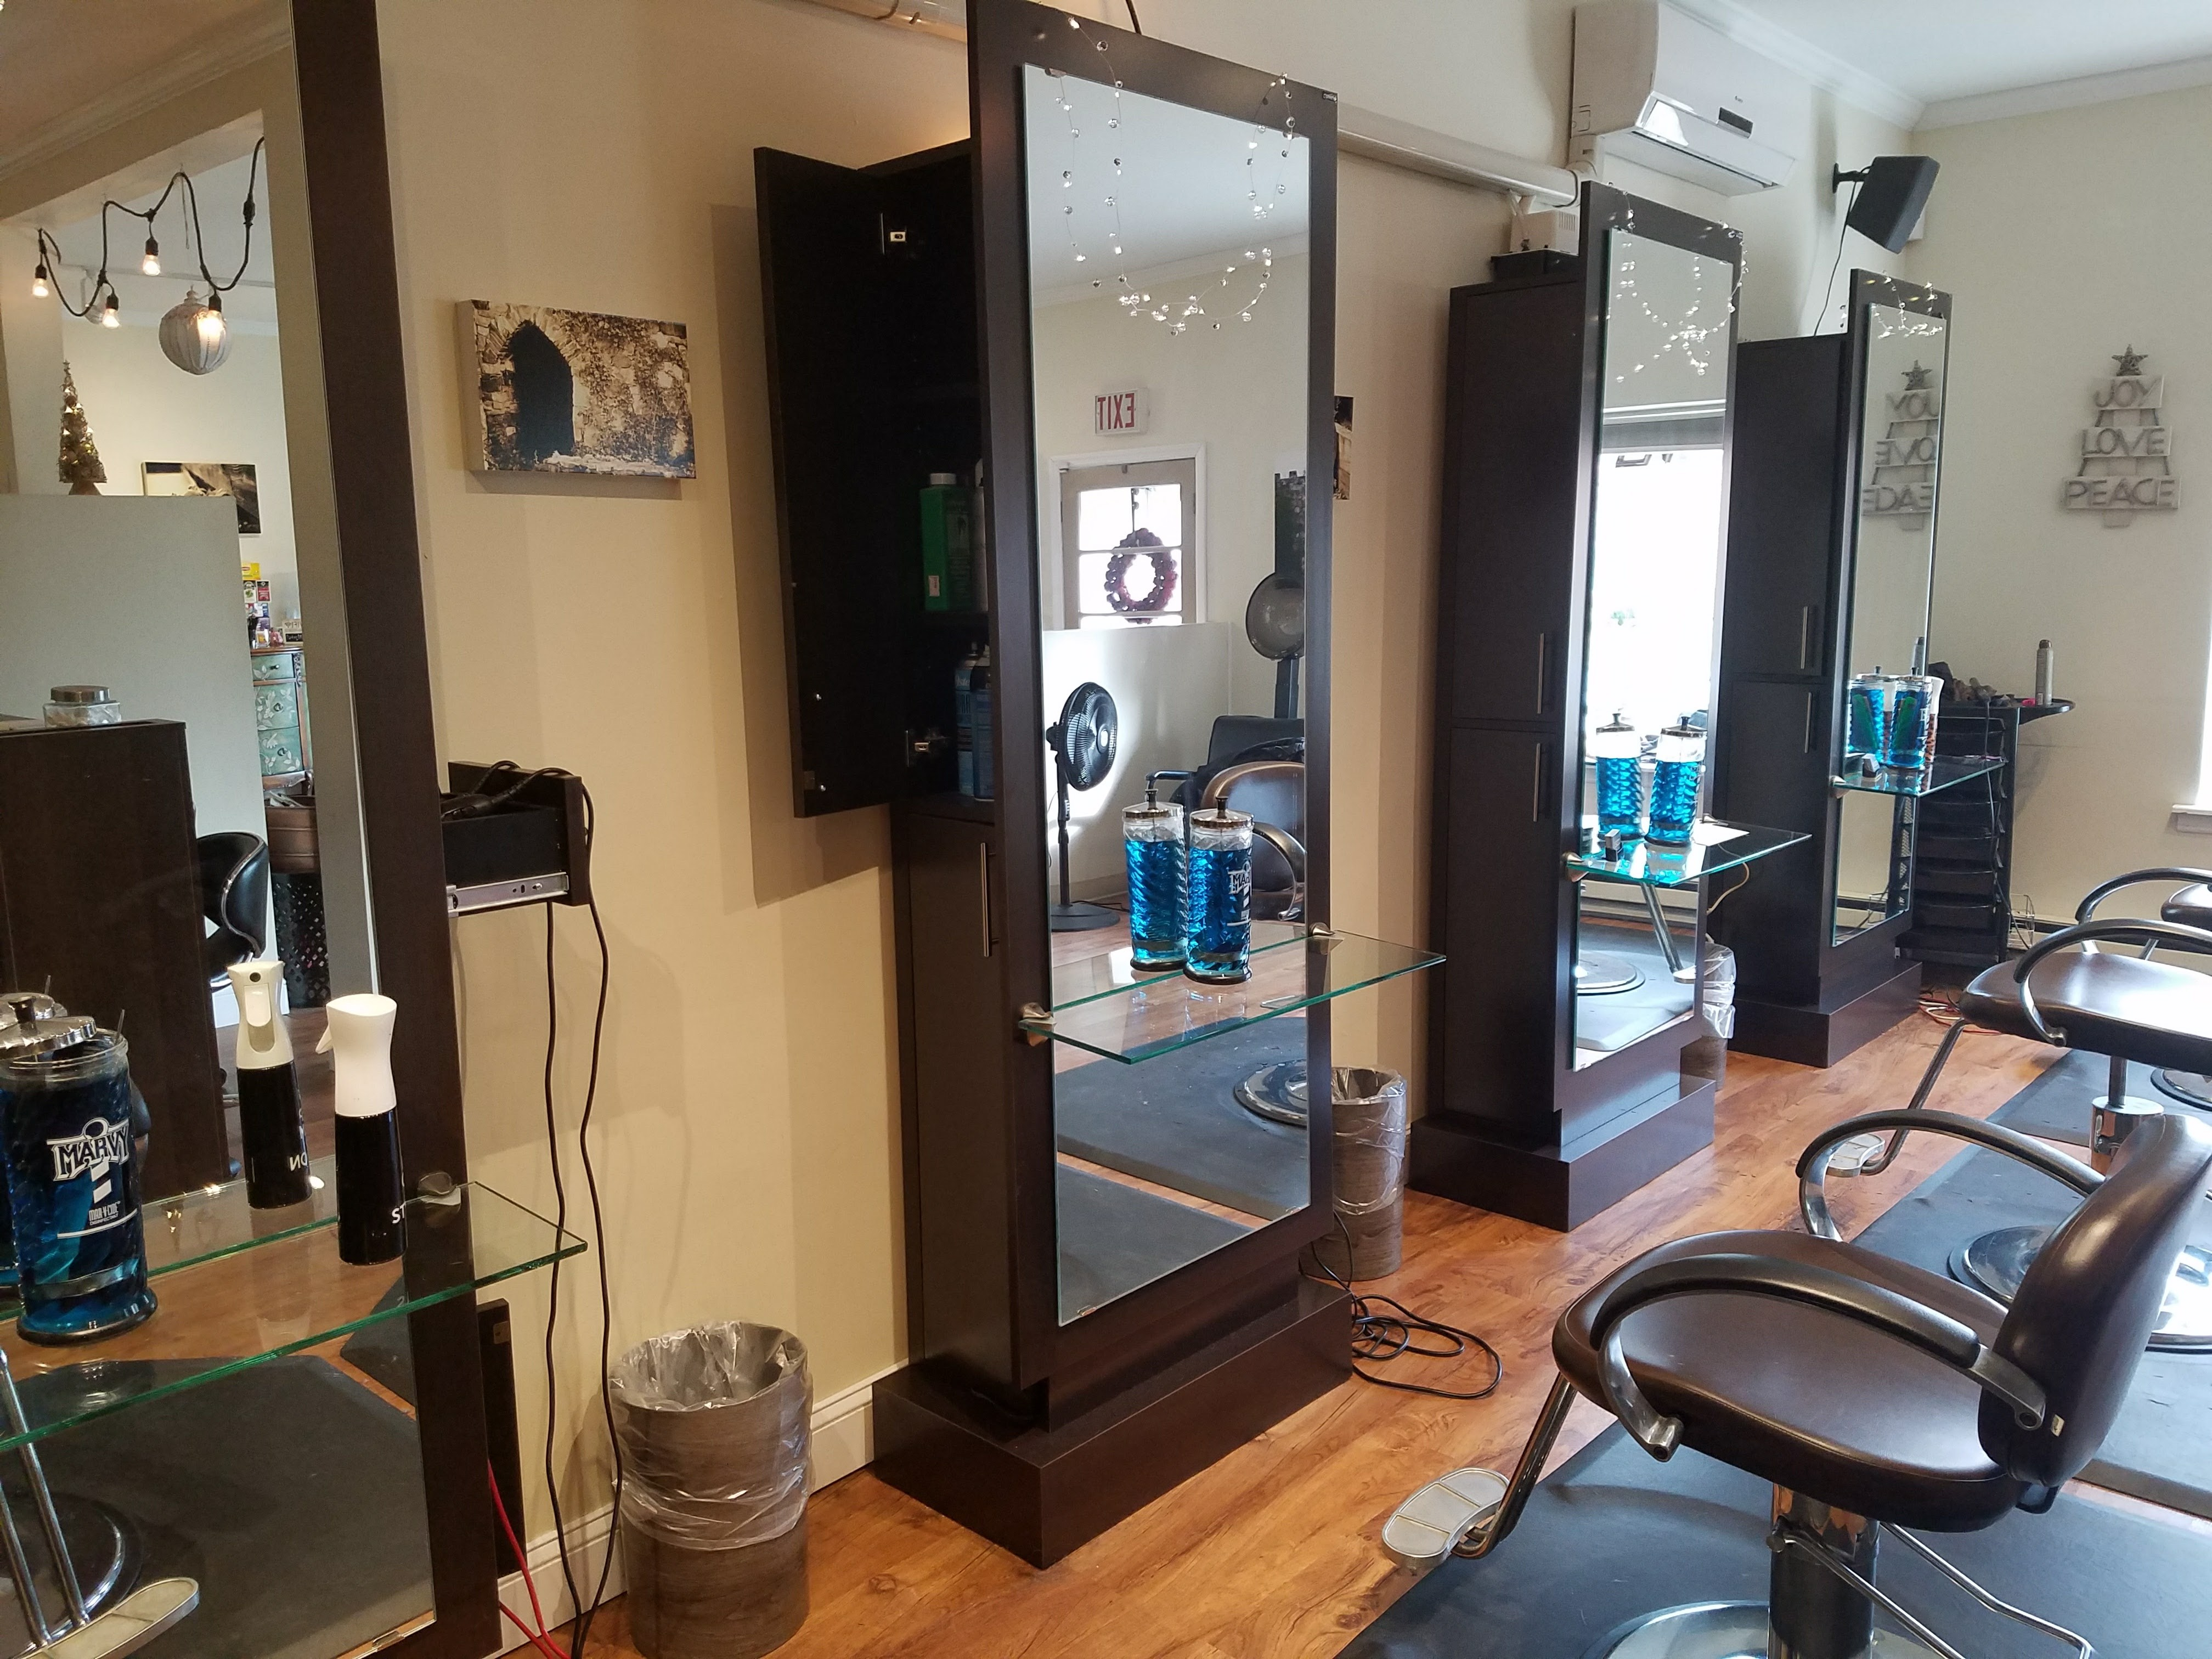 Salon Chic Trendy And Chic Sizo Salon In Patterson Brings Your Inner Beauty Out